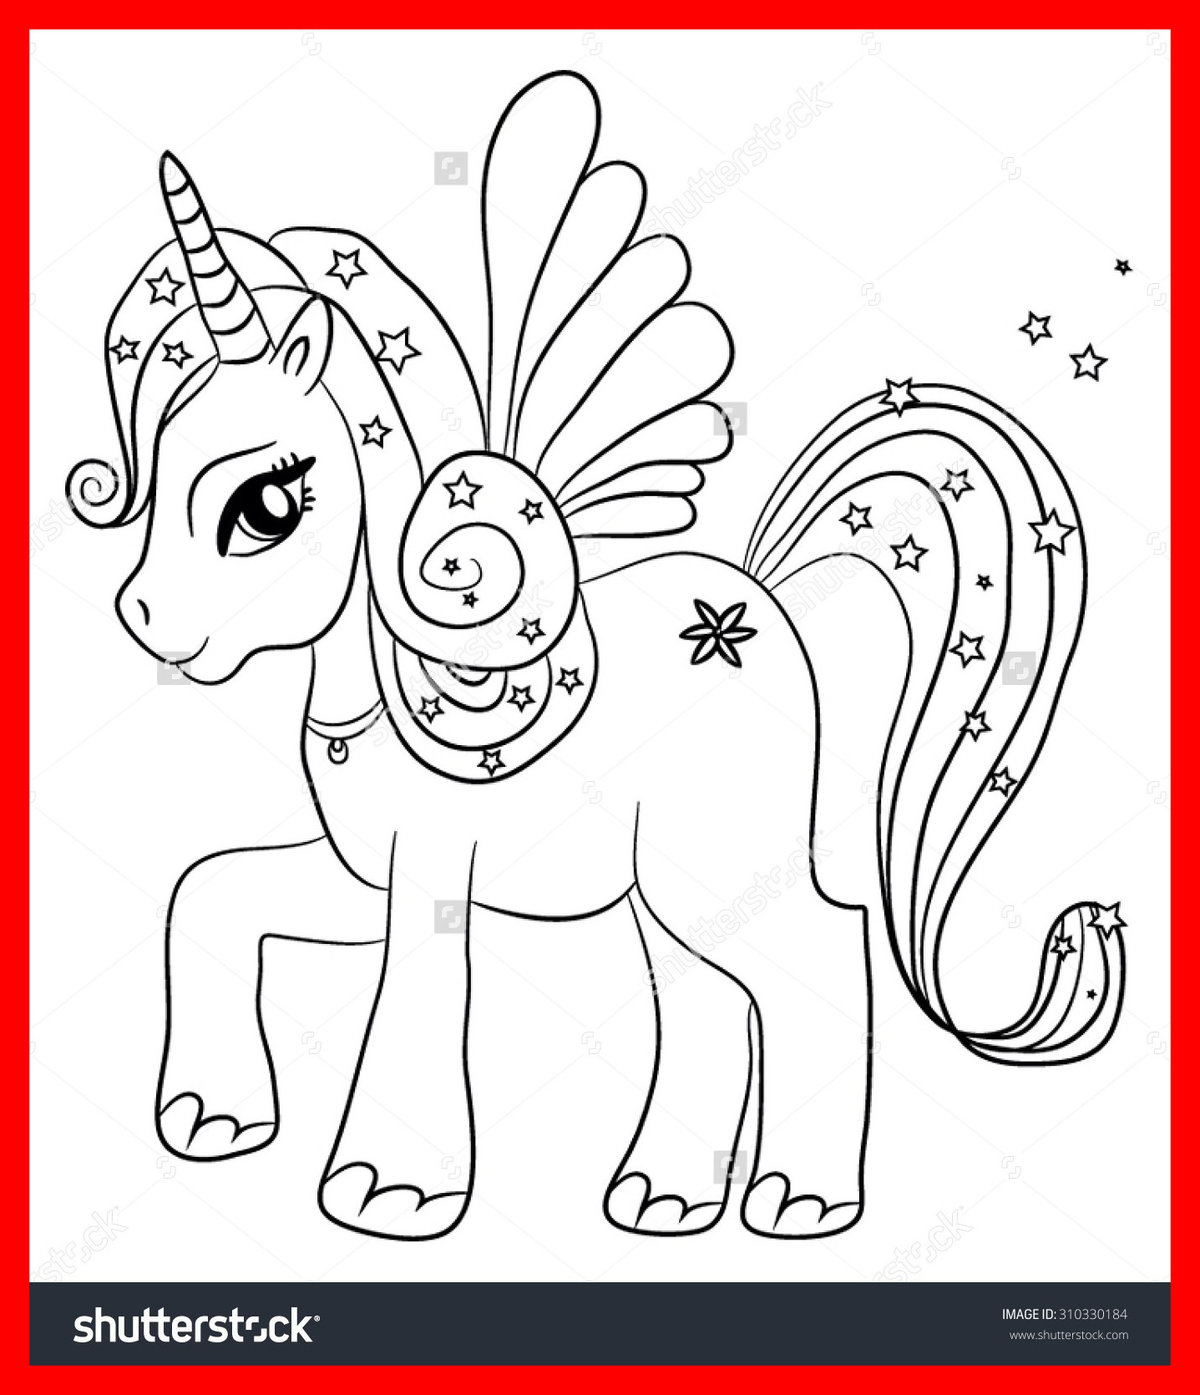 Kawaii unicorn with wings coloring pages getcoloringpages